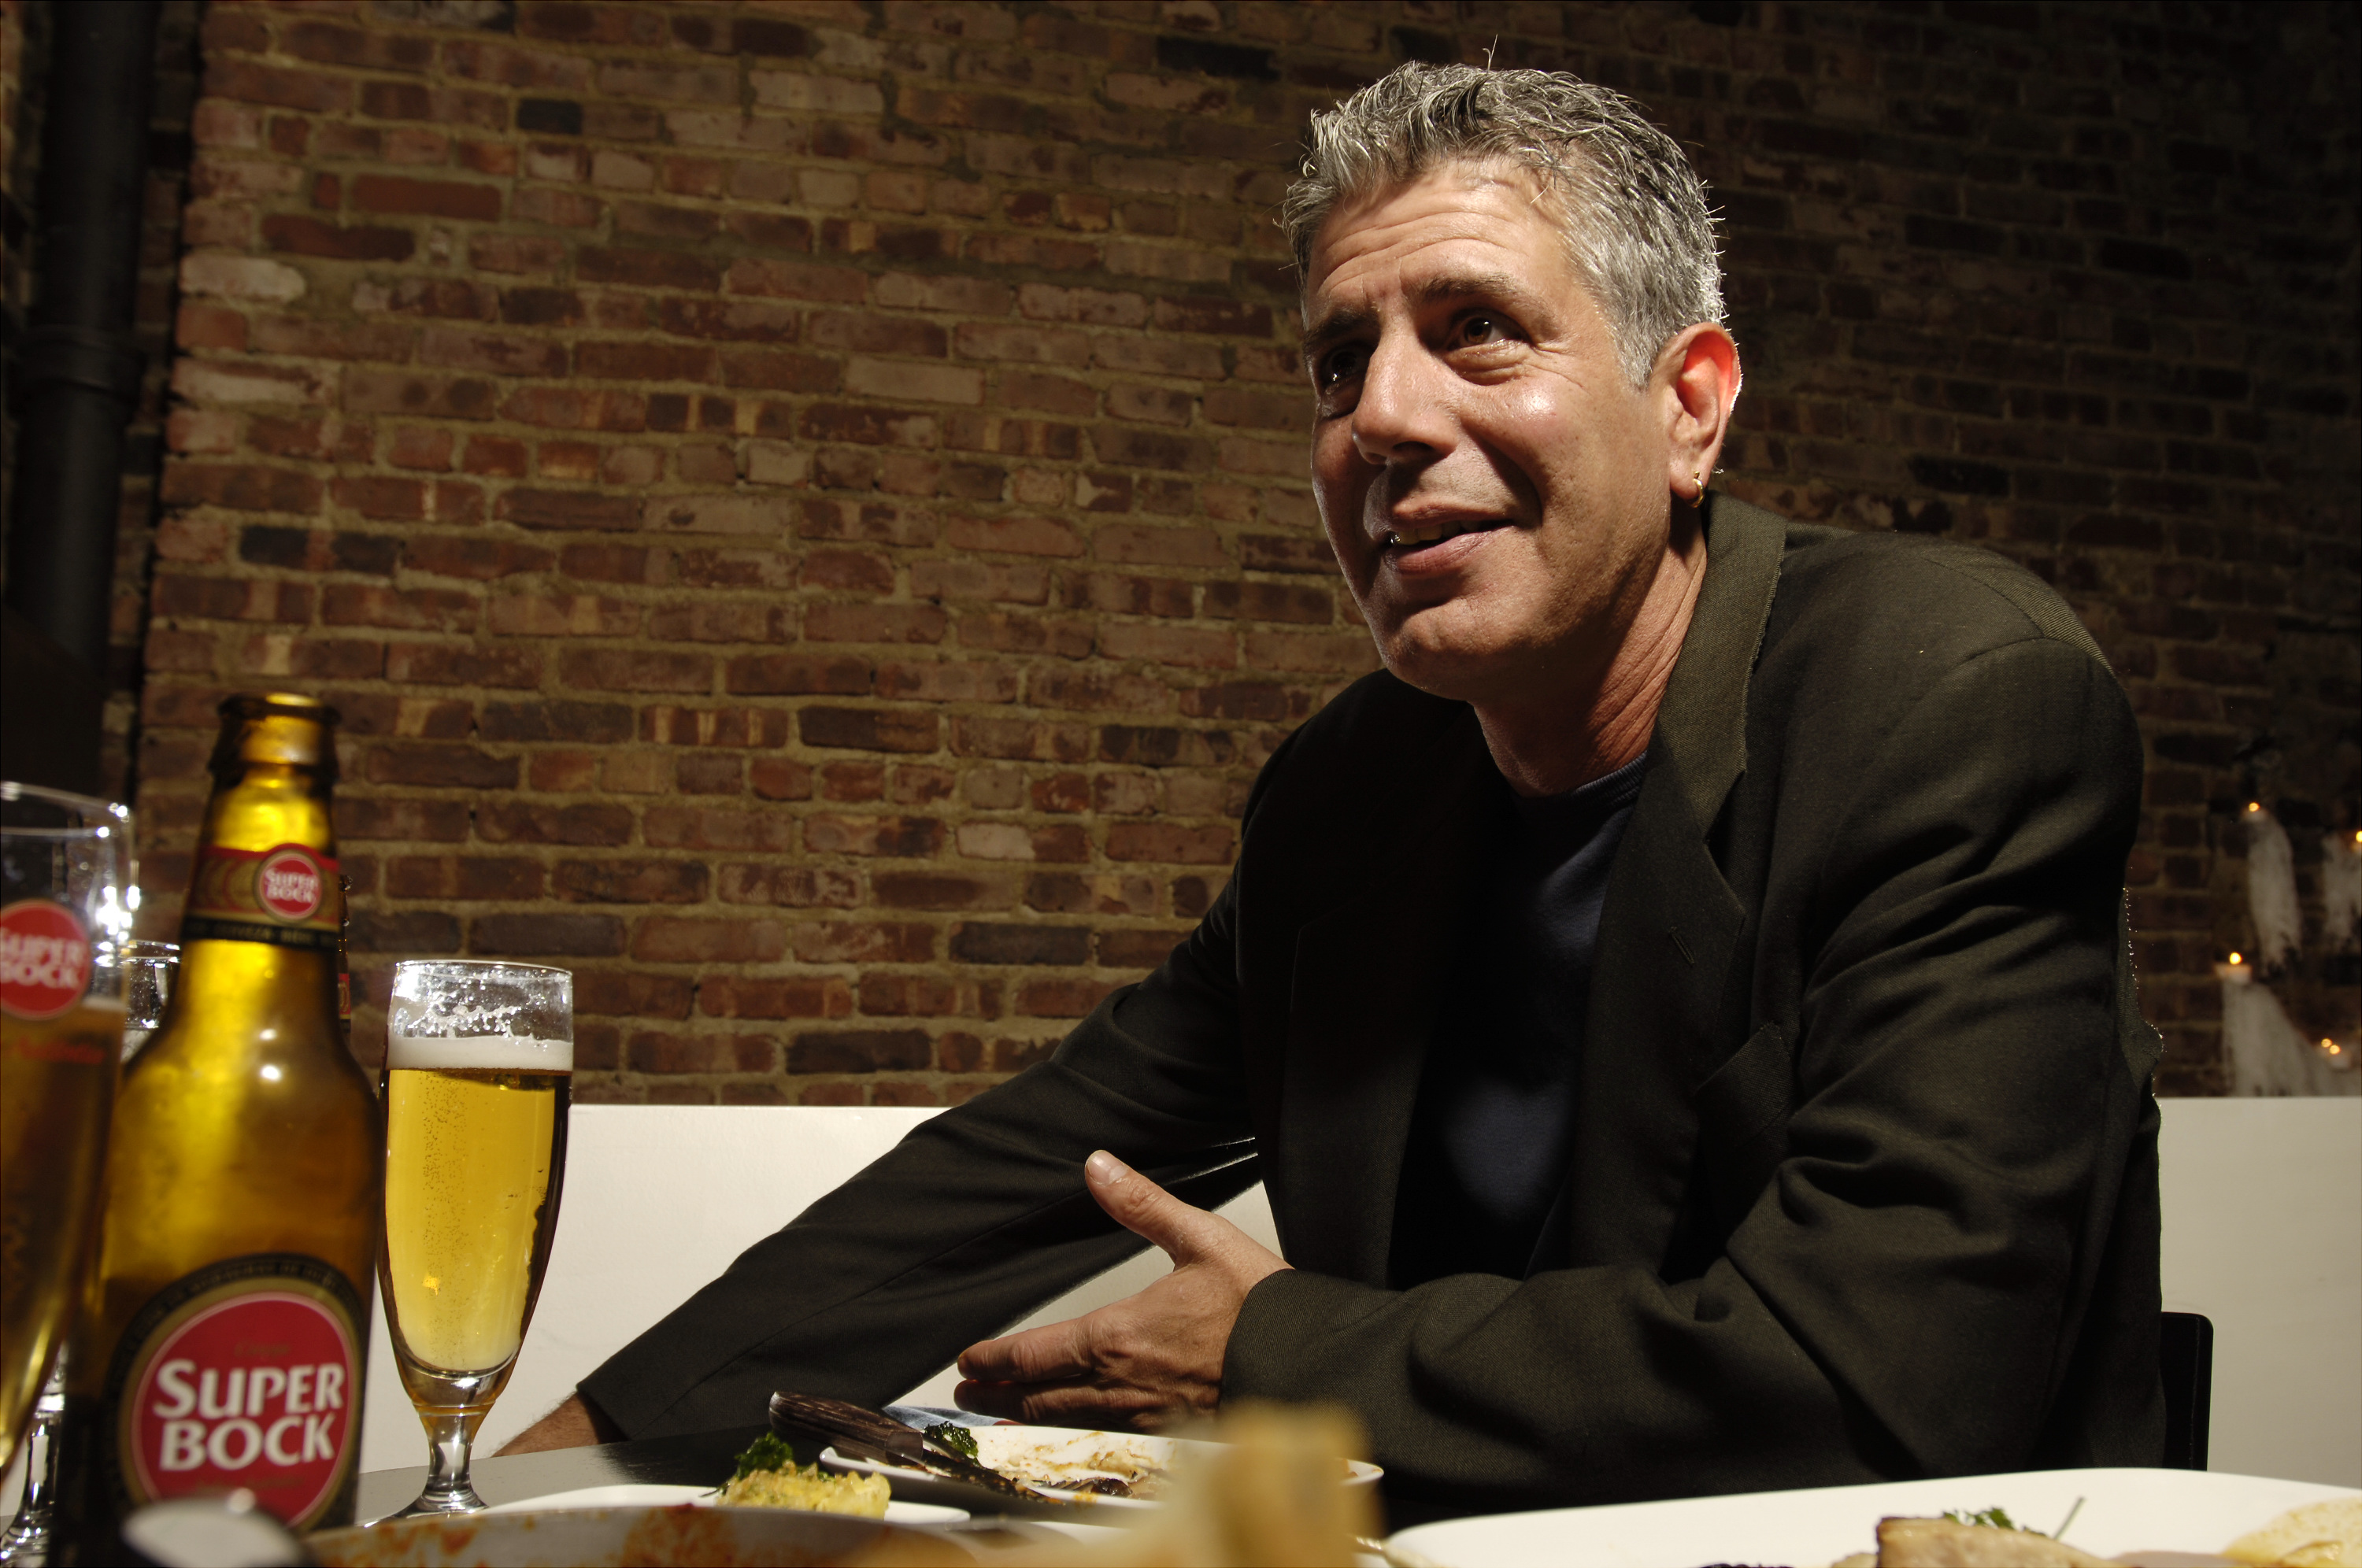 Chef Anthony Bourdain has a drink at Tintol restaurant in Times Square. Bourdain, 49, is the star of  Anthony Bourdain: No Reservations,  the Travel Channel series that's half travelogue and half food show. Traveling constantly for the show, on which he regularly grosses viewers out by eating such delicacies as fermented shark meat in Iceland -  the smell alone would stop a rhinoceros in its tracks,  he says - means he's only in his Manhattan apartment a few days out of the month.  (Photo by James Keivom/NY Daily News Archive via Getty Images)